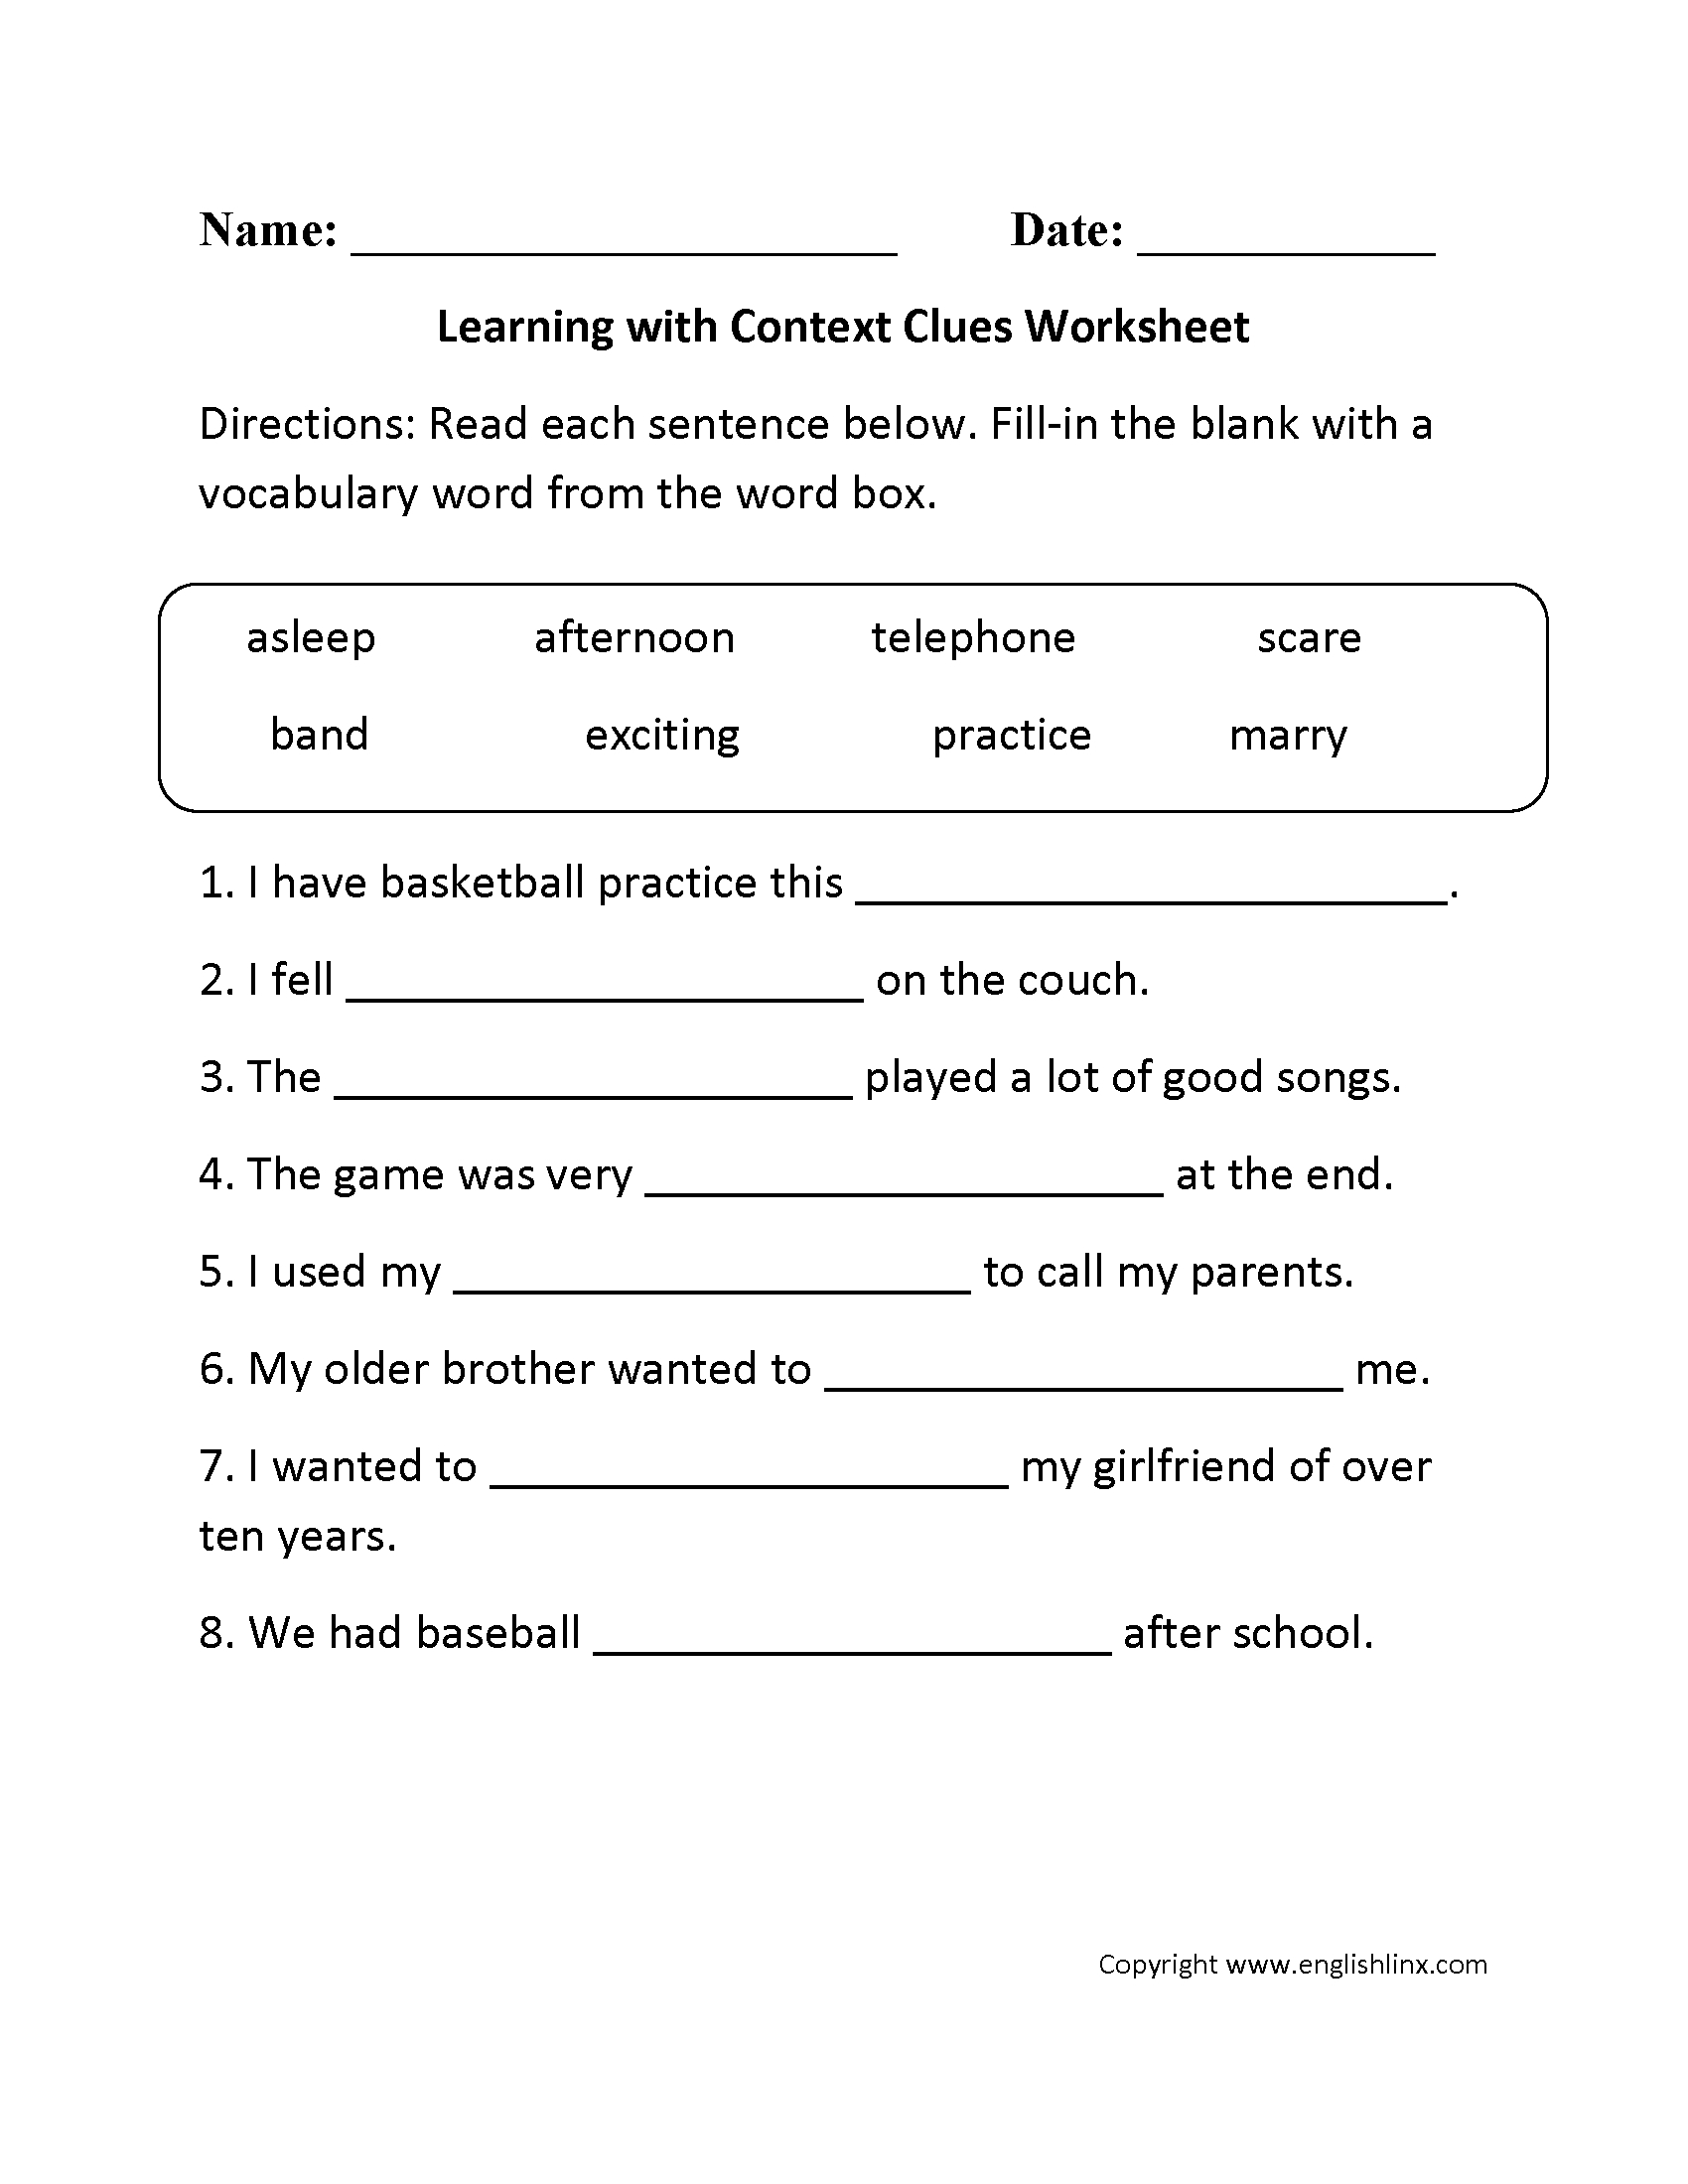 Awesome Context Clues Worksheets 3Rd Grade For Free Download Math As Well As Context Clues Worksheets 3Rd Grade Multiple Choice